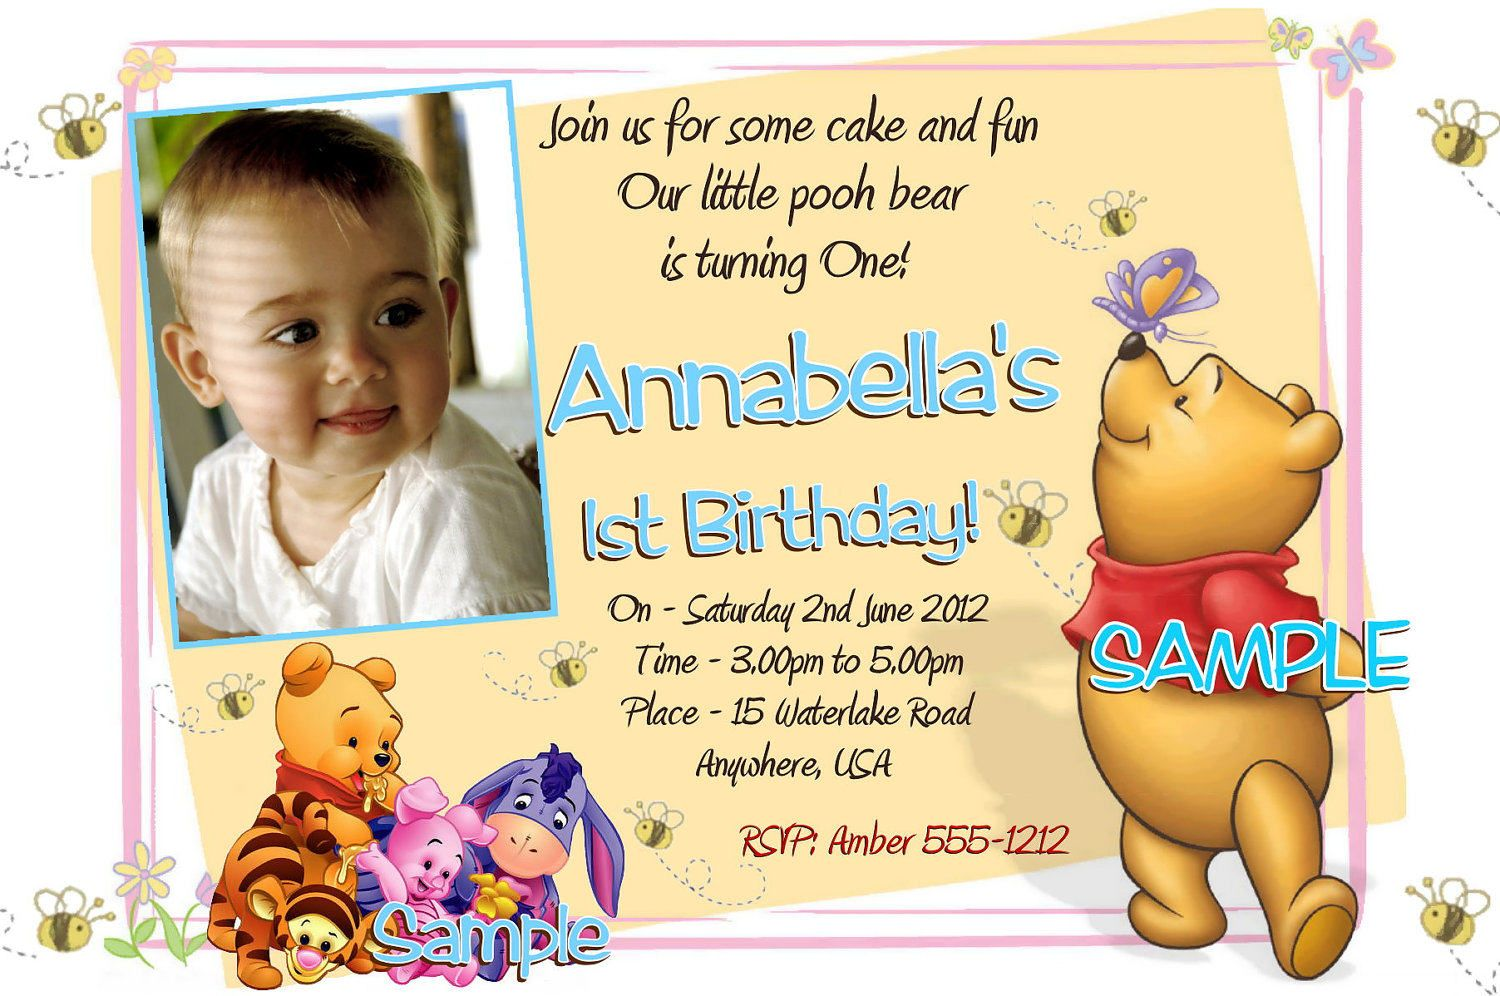 winnie the pooh birthday invitation templates free - Google Search